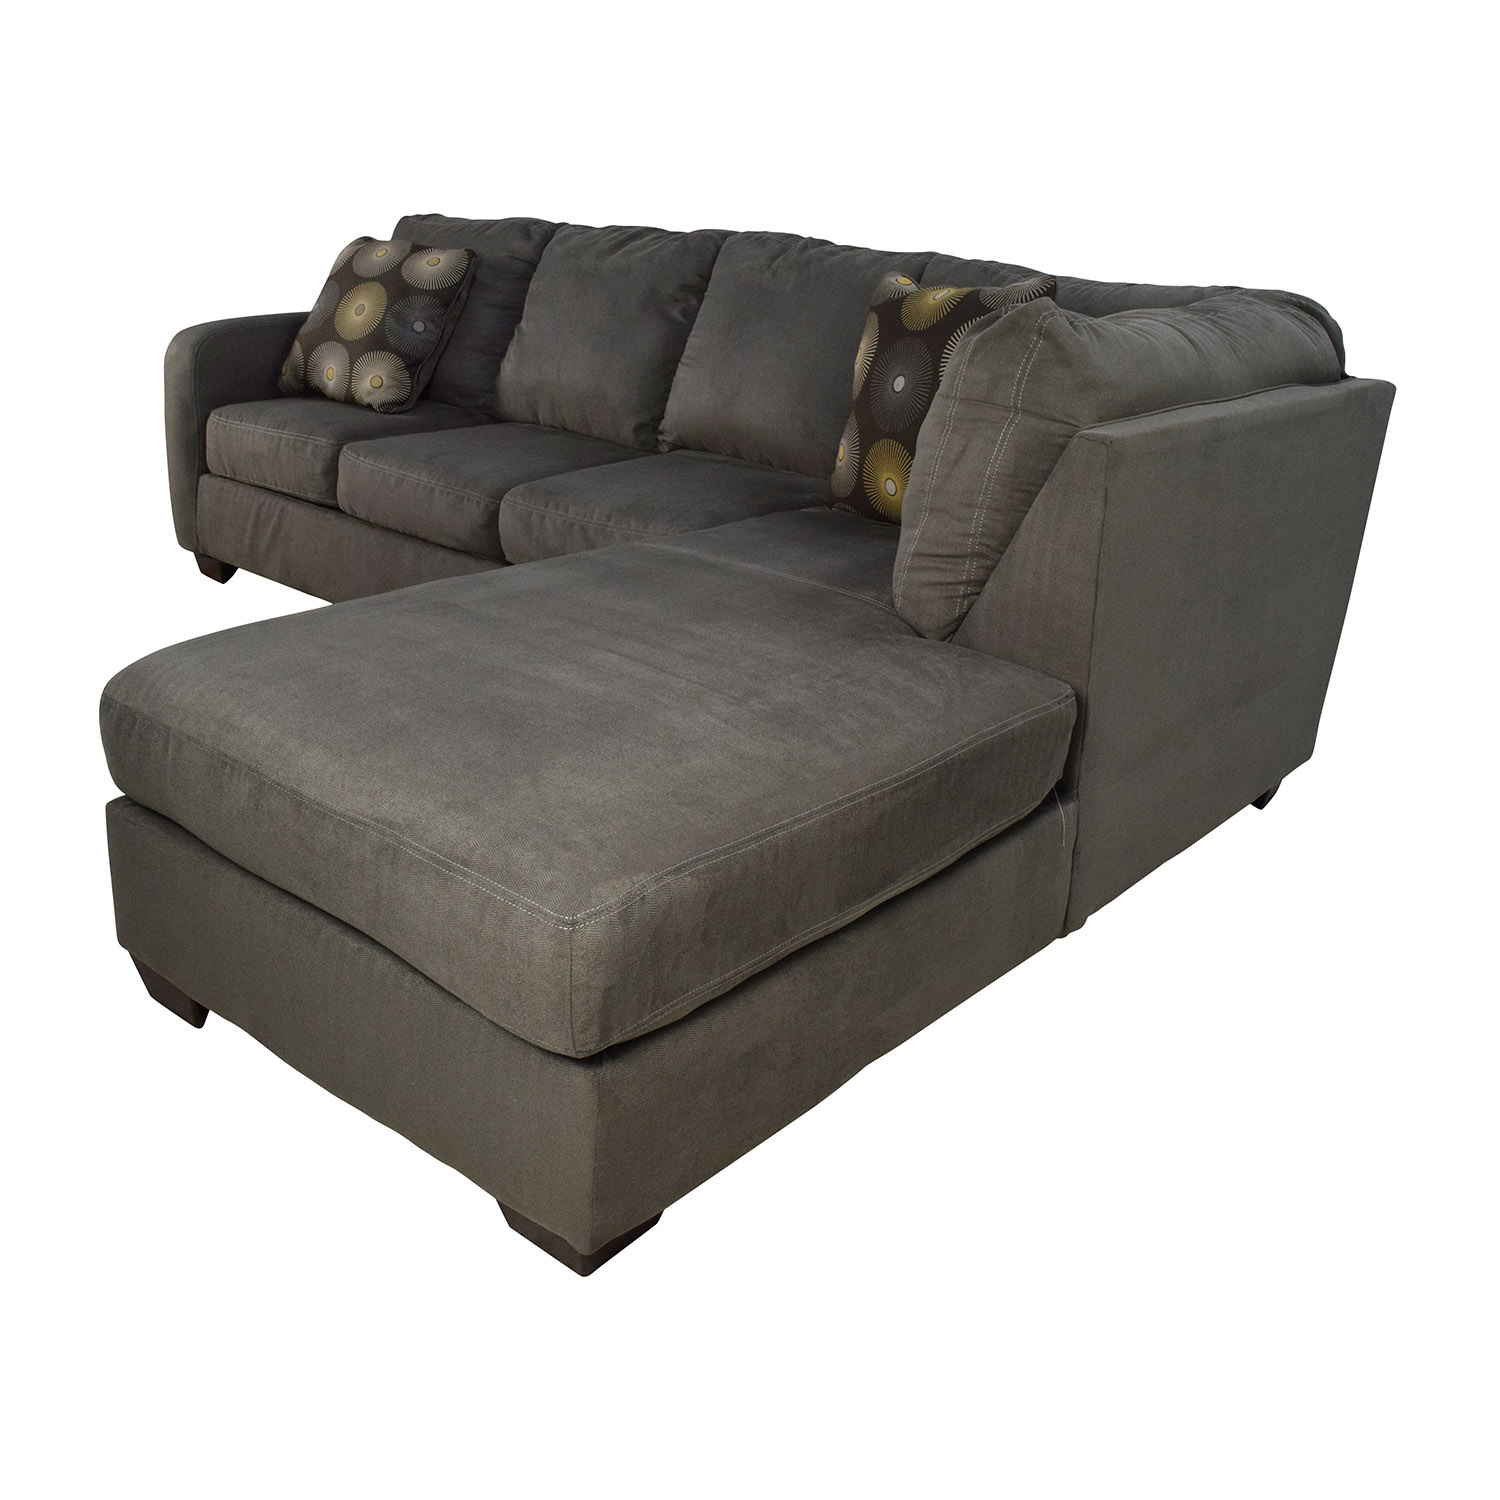 30 off ashley furniture ashley furniture waverly gray for Small sectional sofa ashley furniture